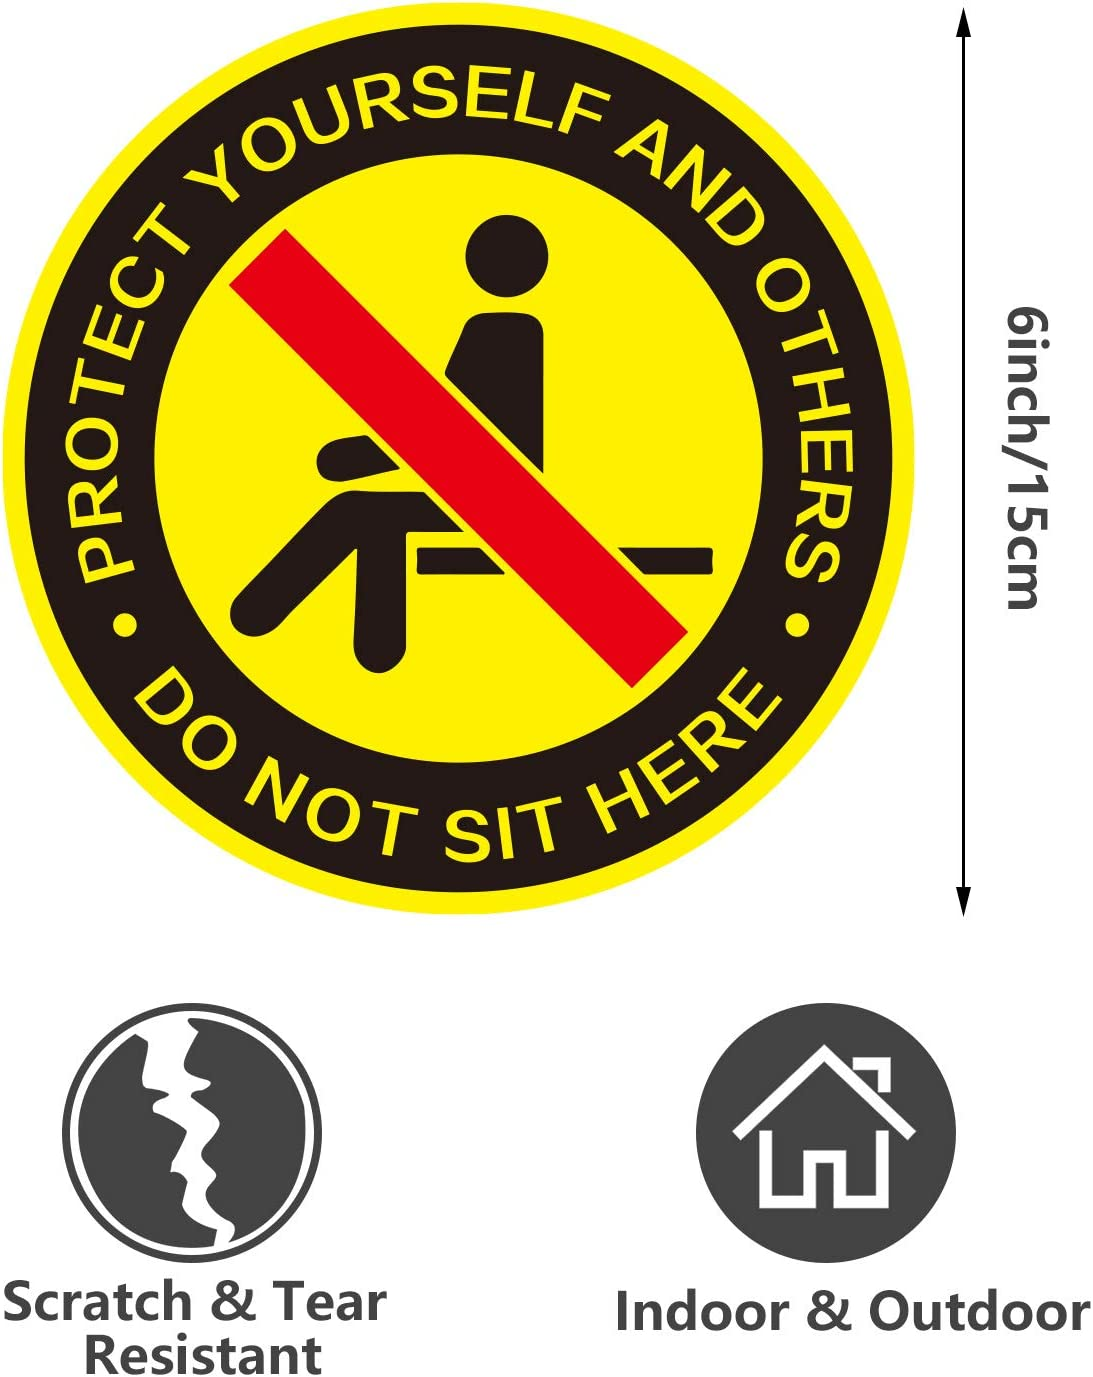 Self Adhesive Waterproof Vinyl Sticker SAFETY SIGN Water Safety Prohibition